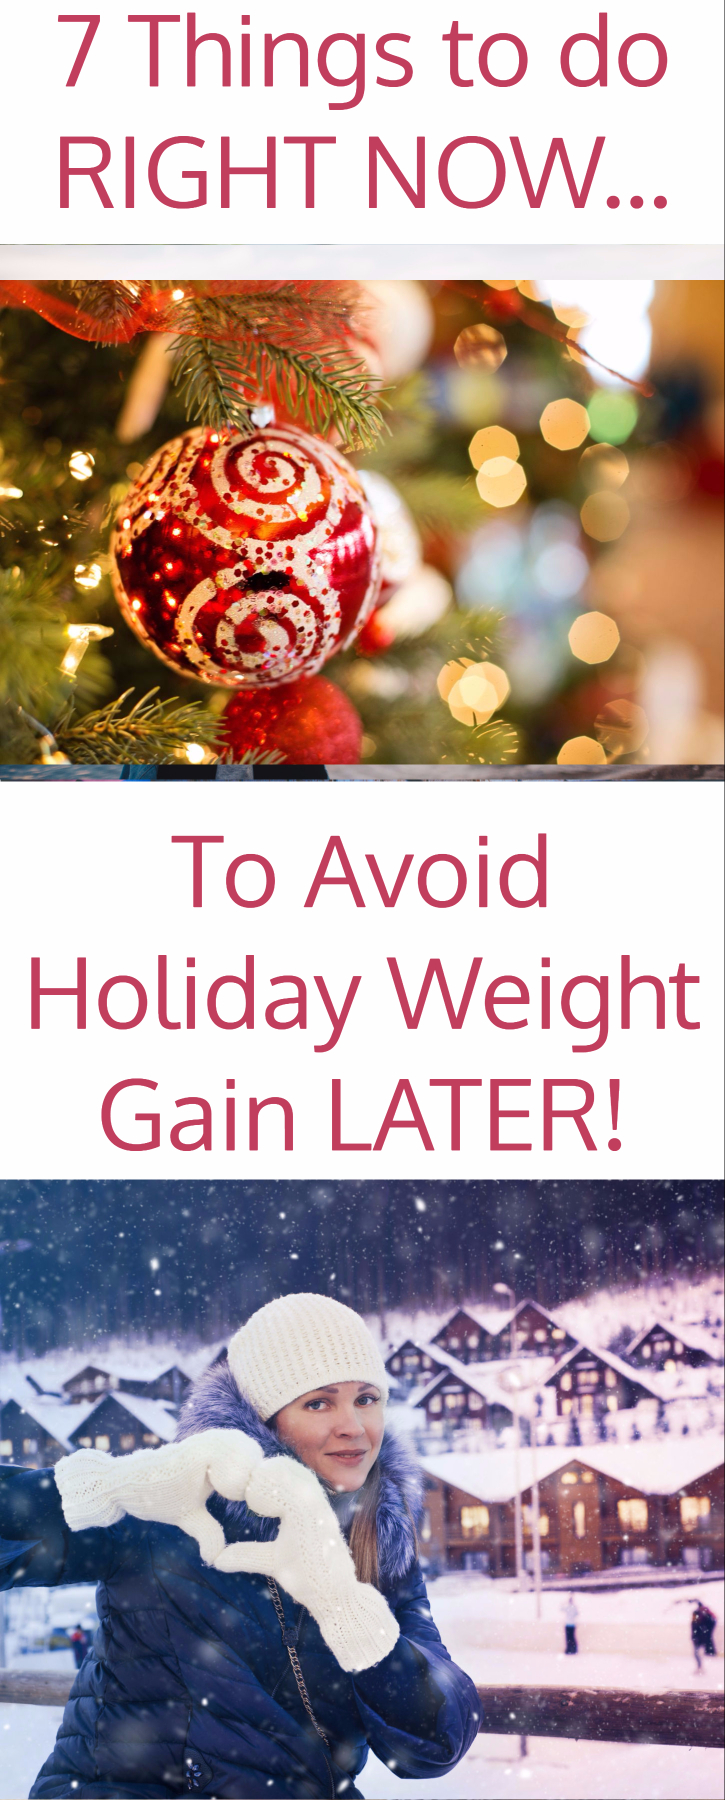 7 things to do right now to avoid holiday weight gain later #christmas #thanksgiving #newyears #weightloss #diet #transformation #holidays #tips #fitness